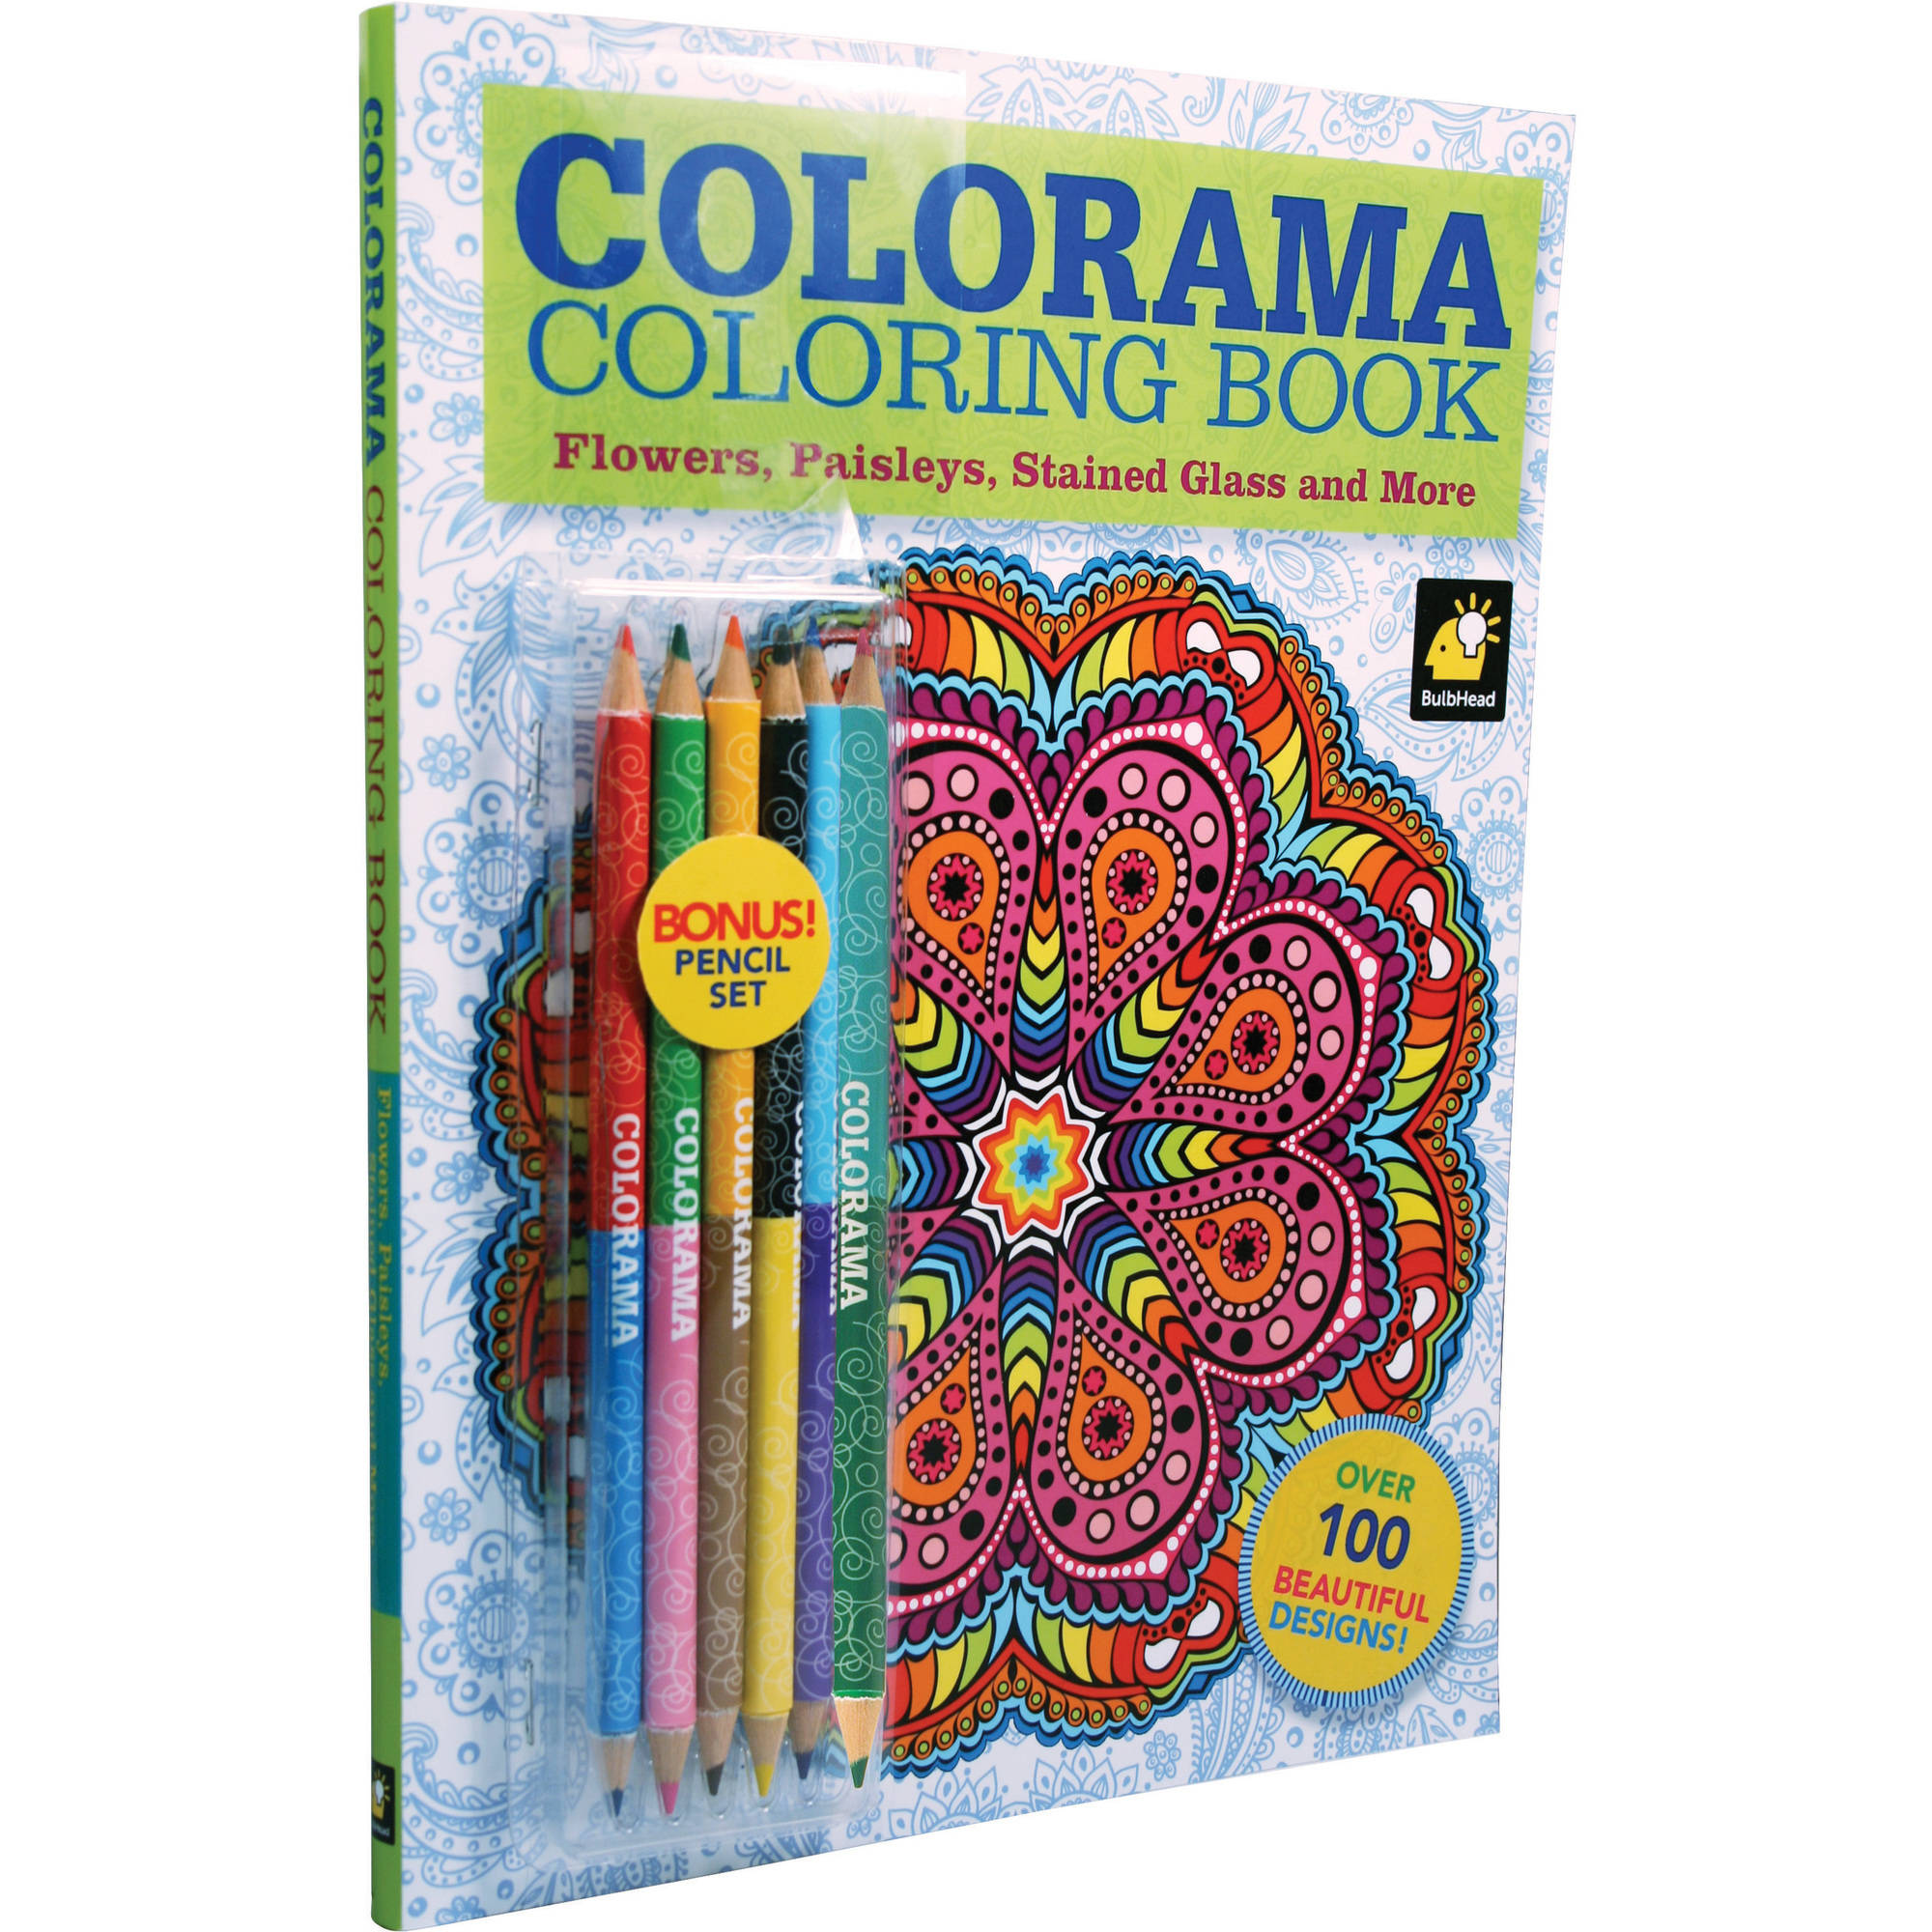 Coolest Coloring Books - For December 2019